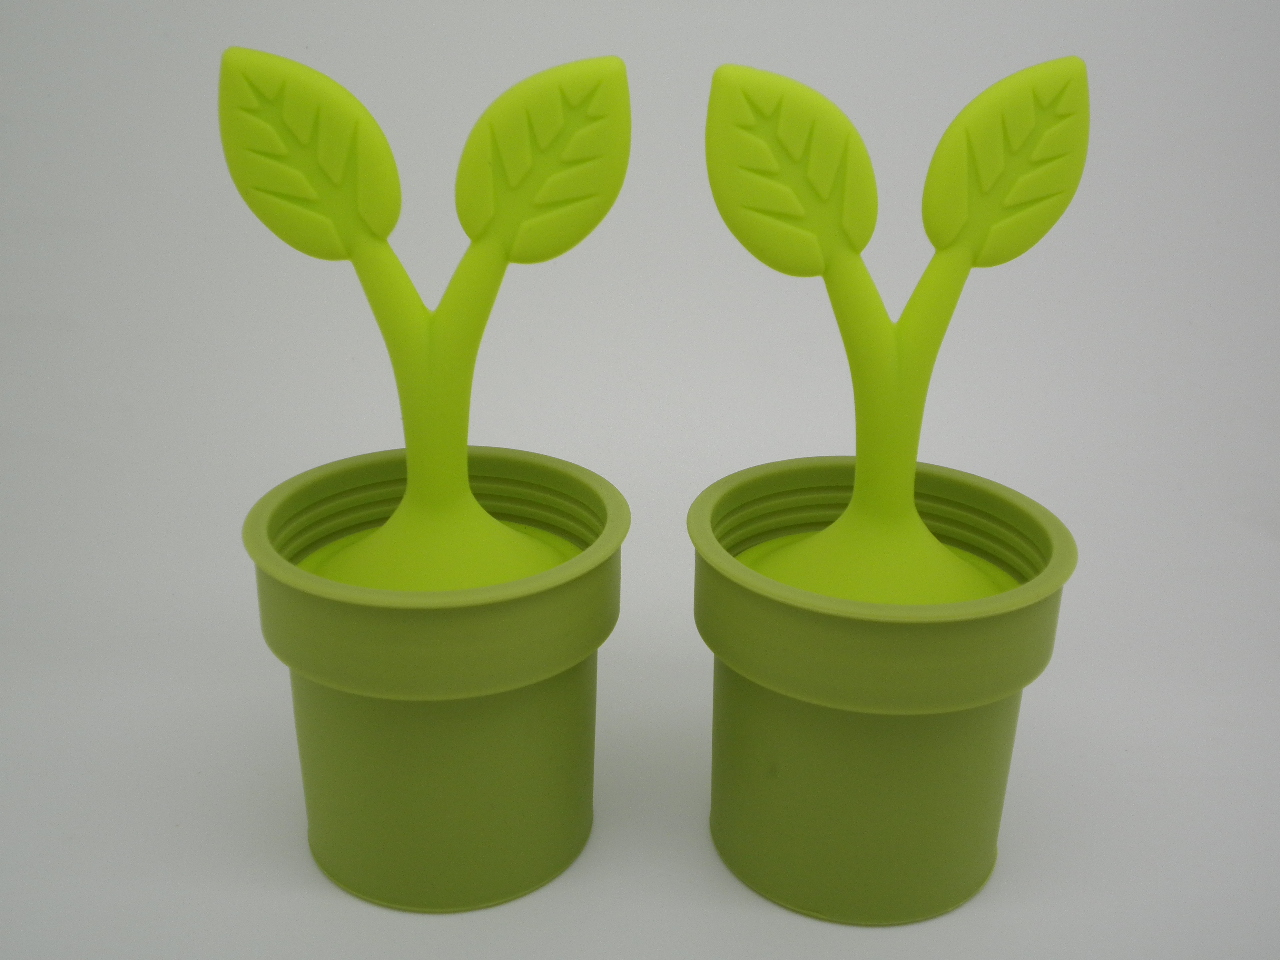 http://www.refinehksilicone.cn/data/images/product/20180417101011_346.JPG